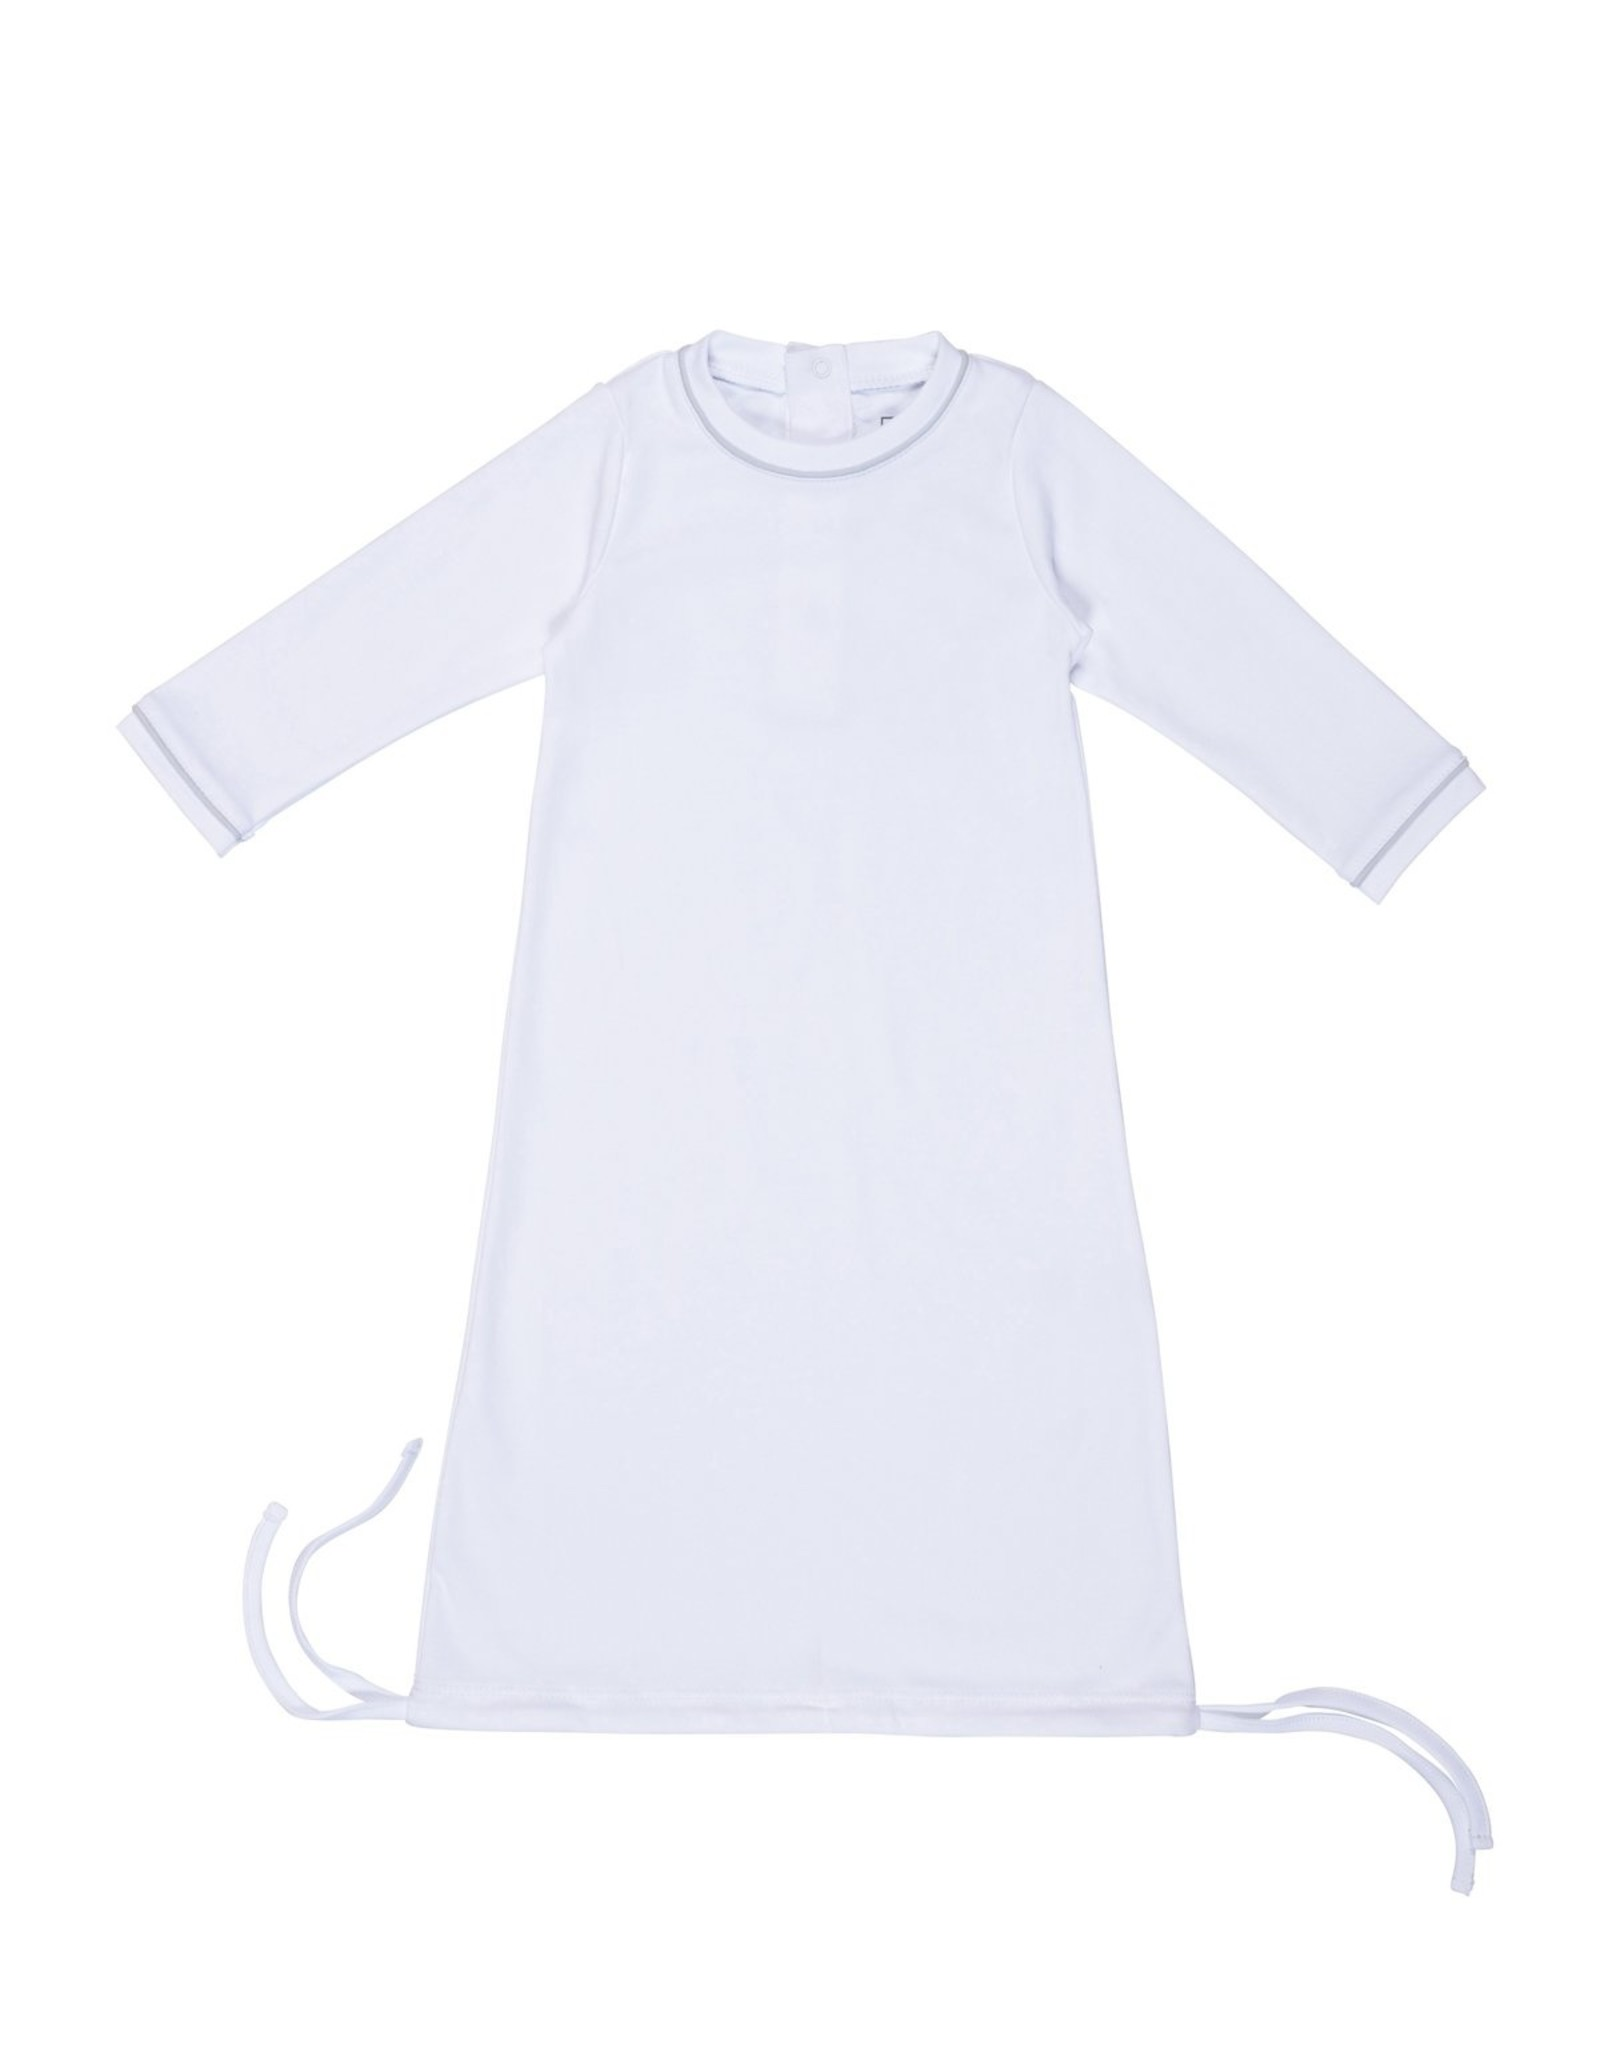 Lila and Hayes George Daygown White w/ Blue Piping